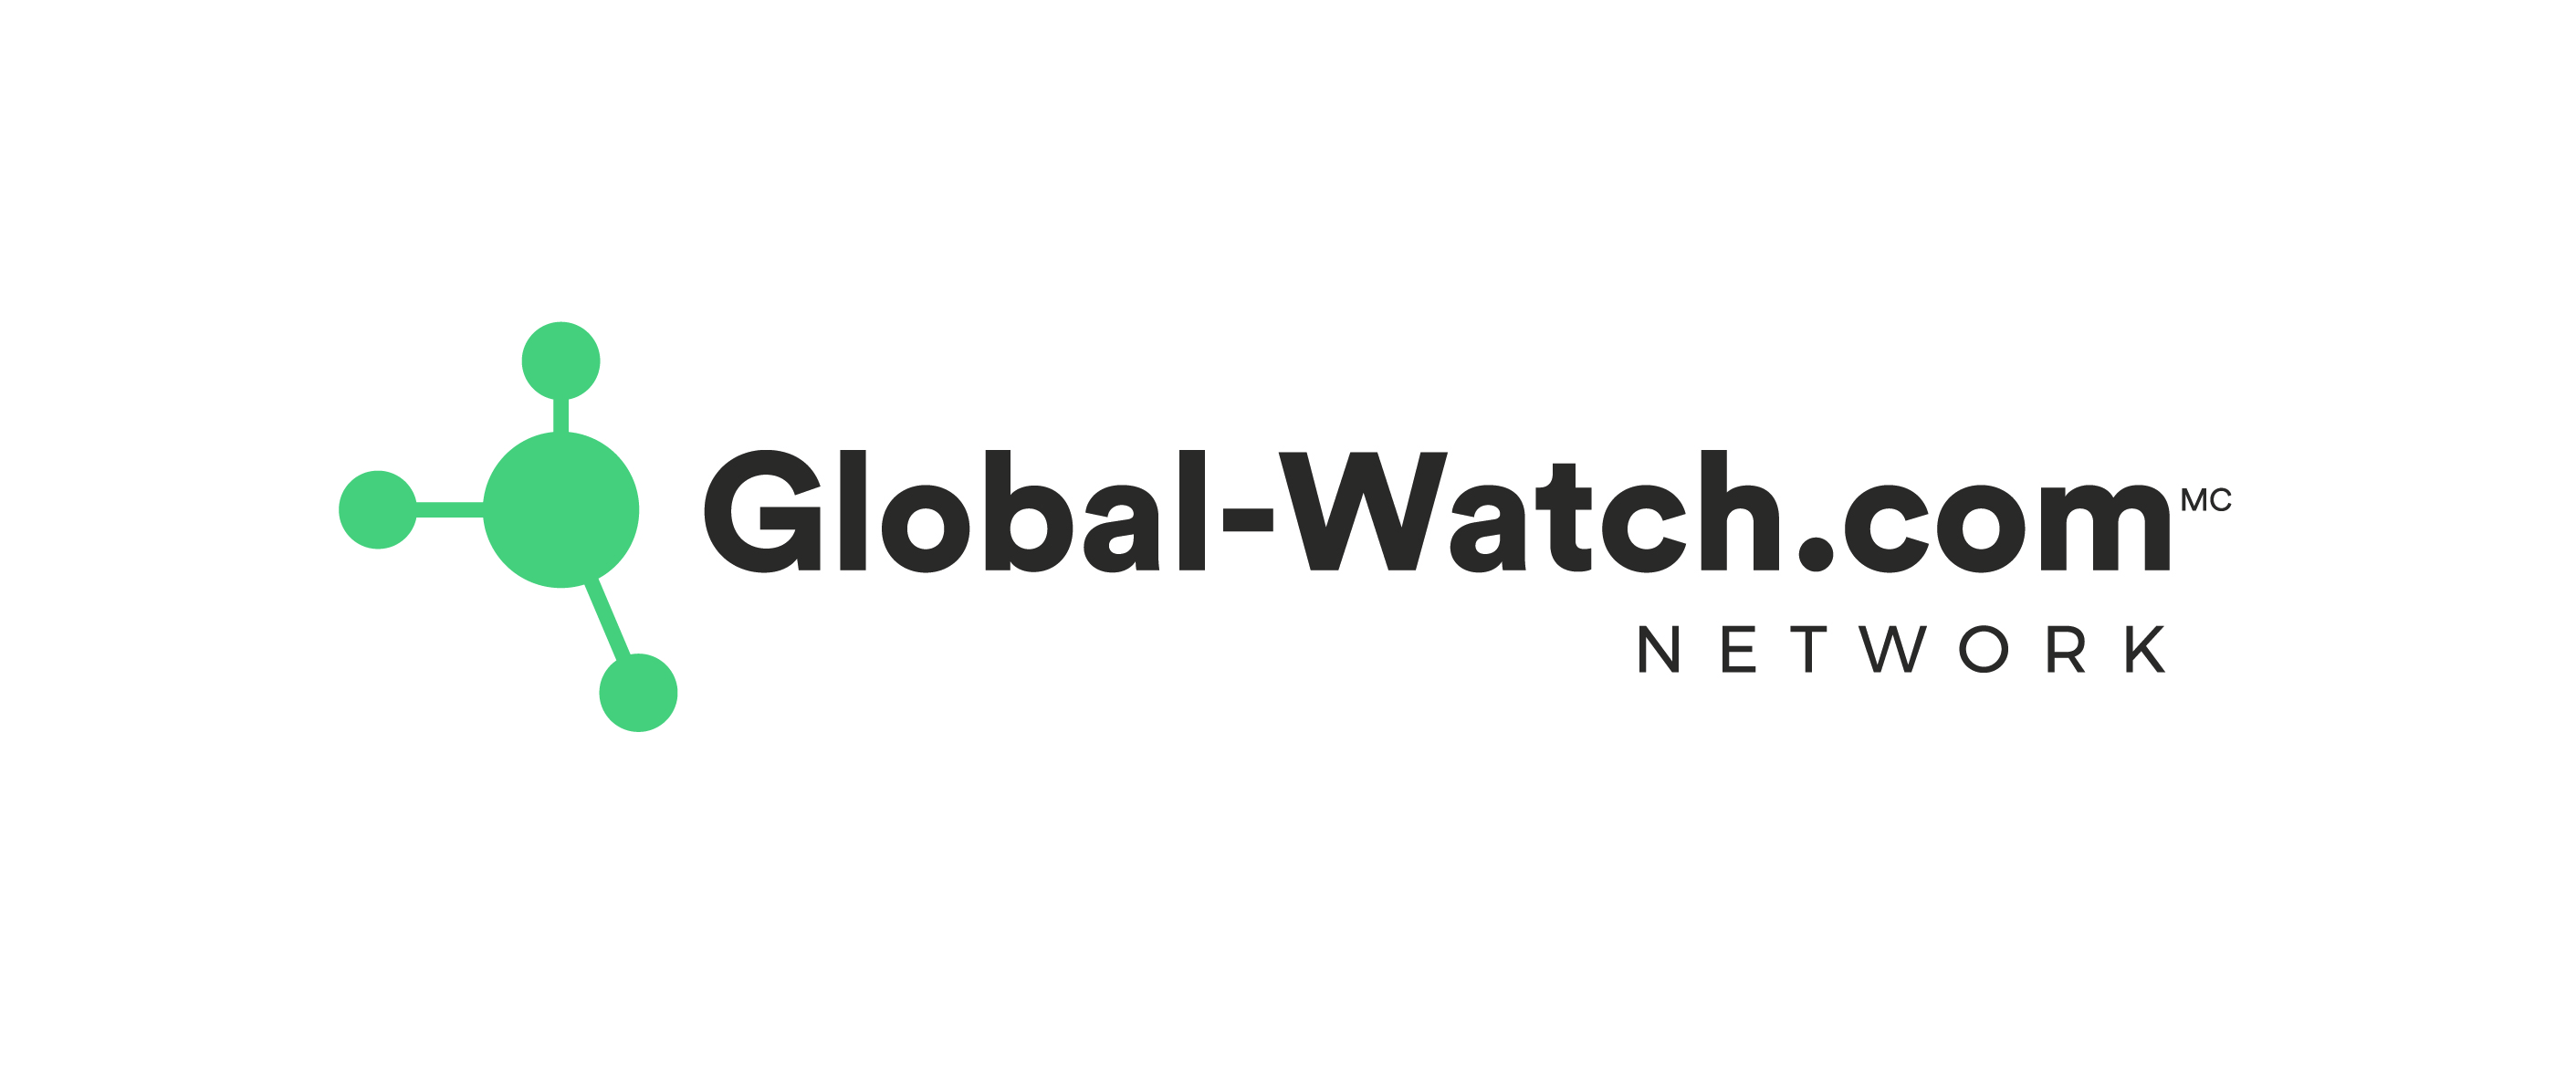 Réseau Global-Watch.com